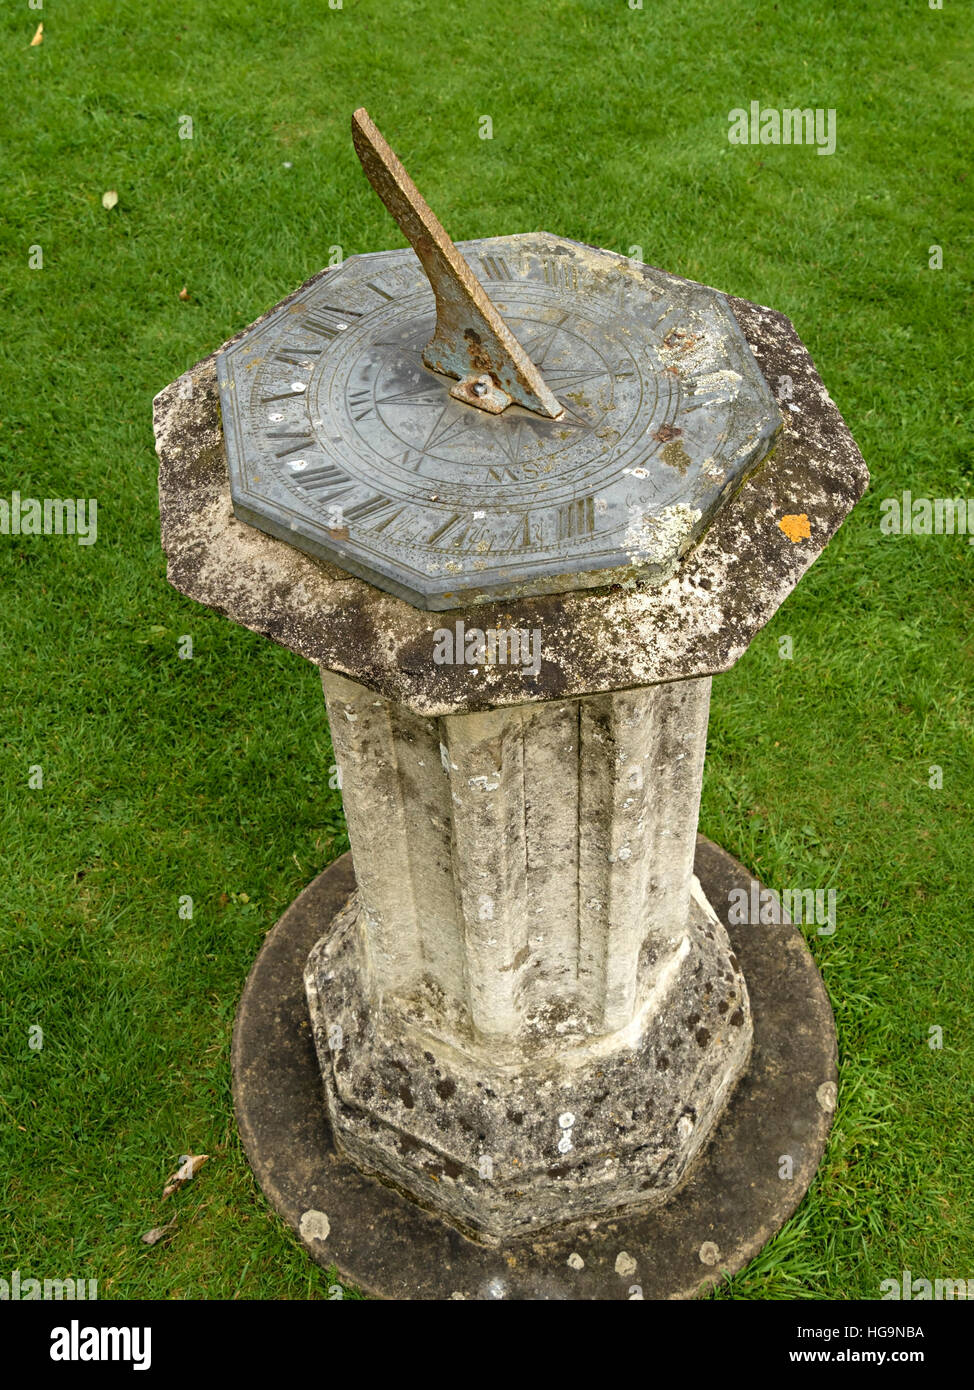 Old Pedestal Garden Sundial With Engraved Roman Numerals, UK.   Stock Image